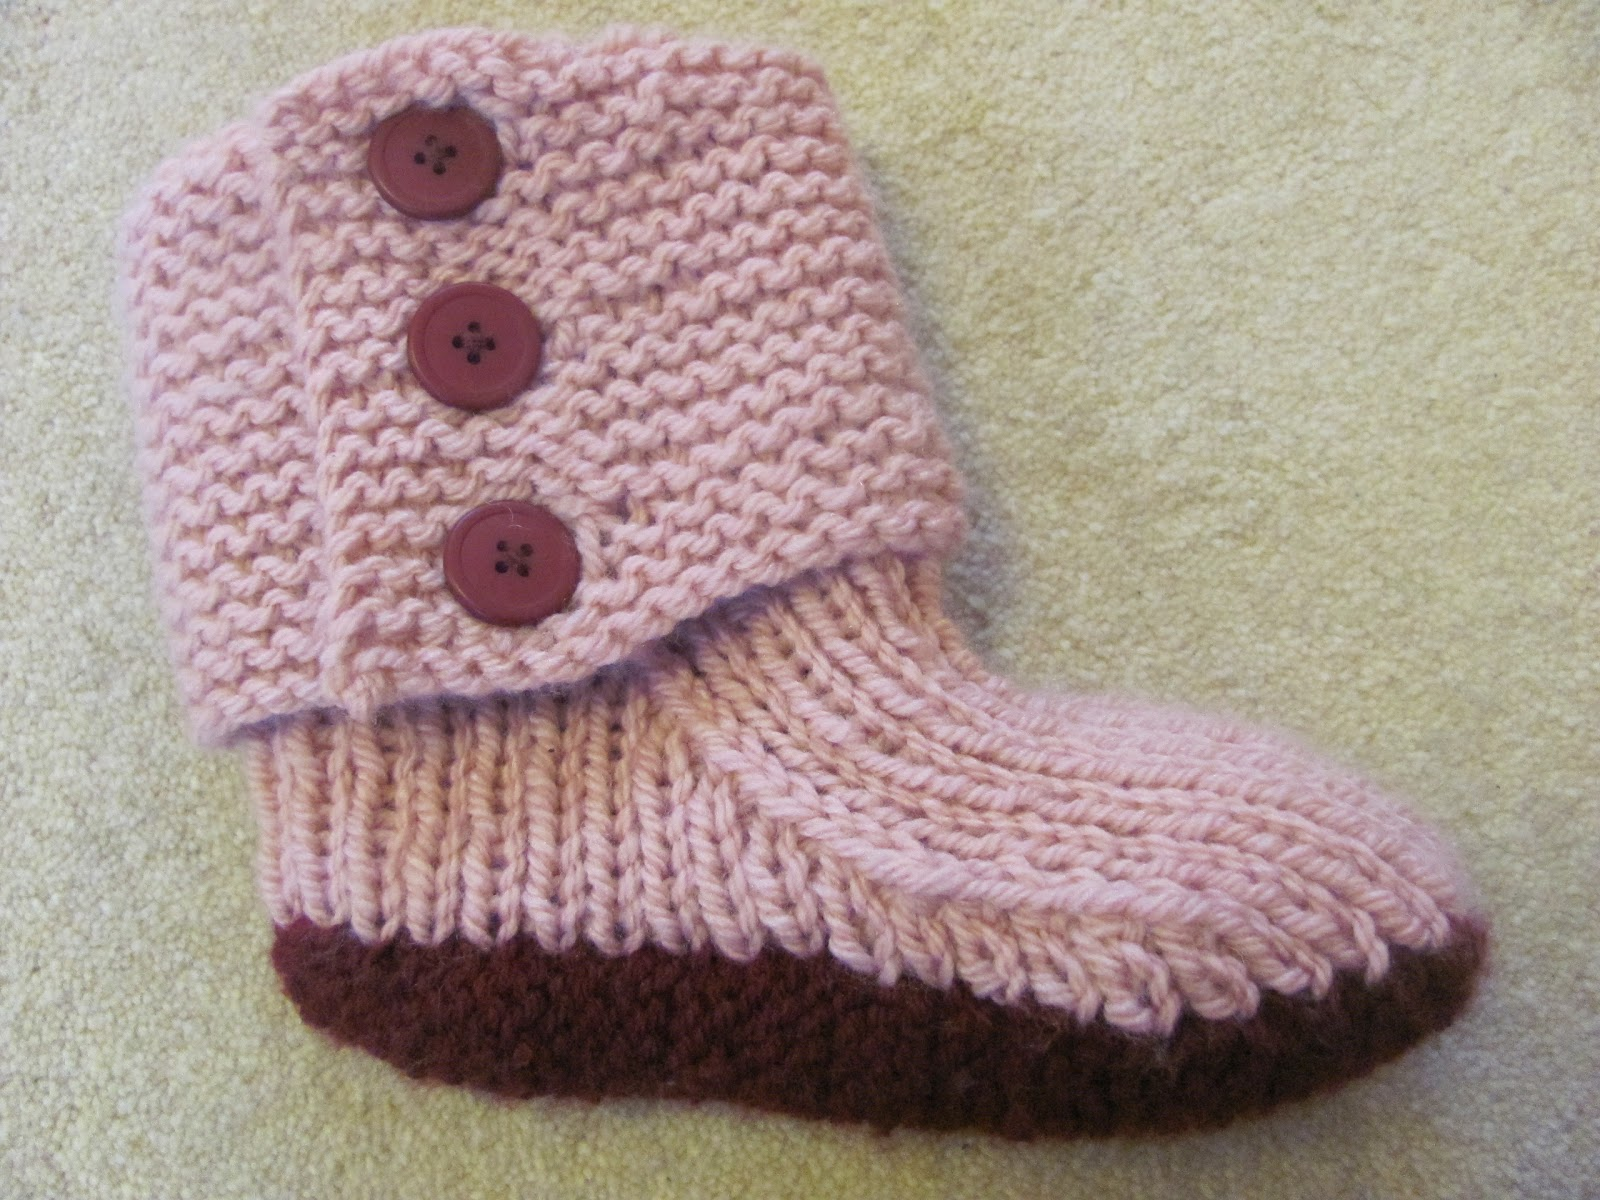 Knitting Patterns Free : BED SOCKS KNITTING PATTERNS FREE PATTERNS